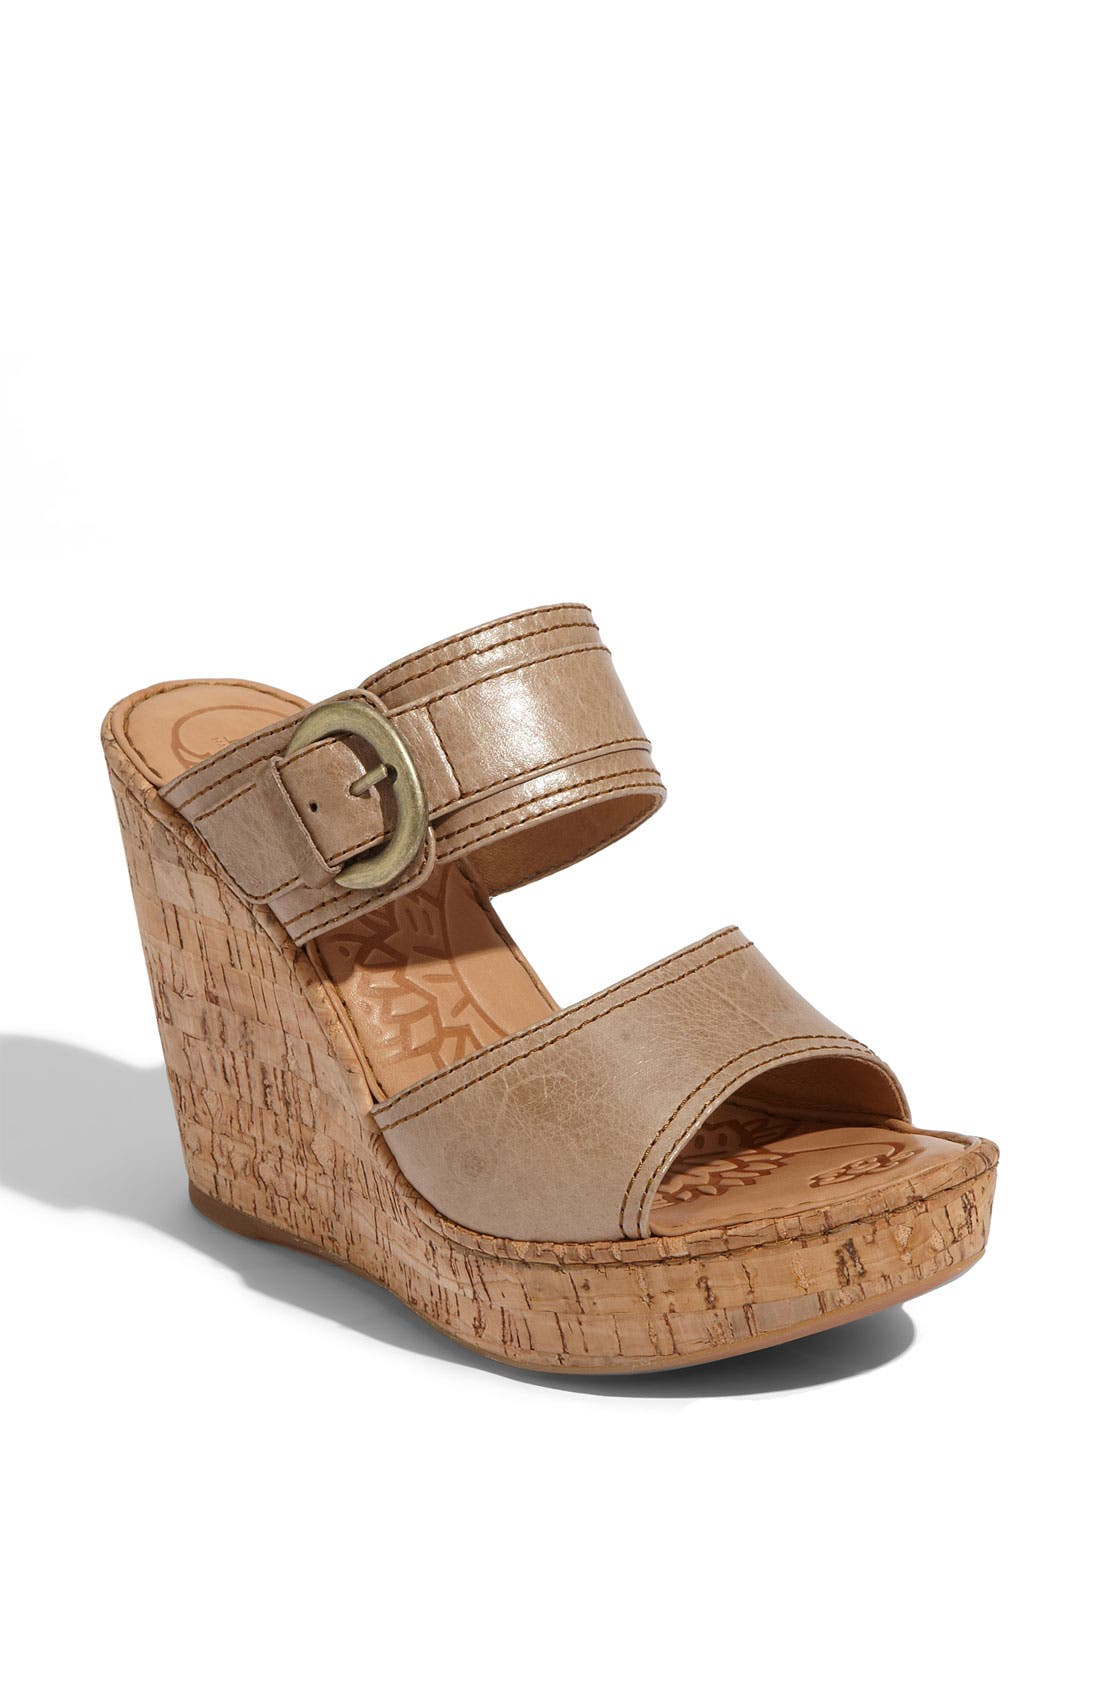 Main Image - Børn 'Zee' Wedge Sandal (Exclusive)